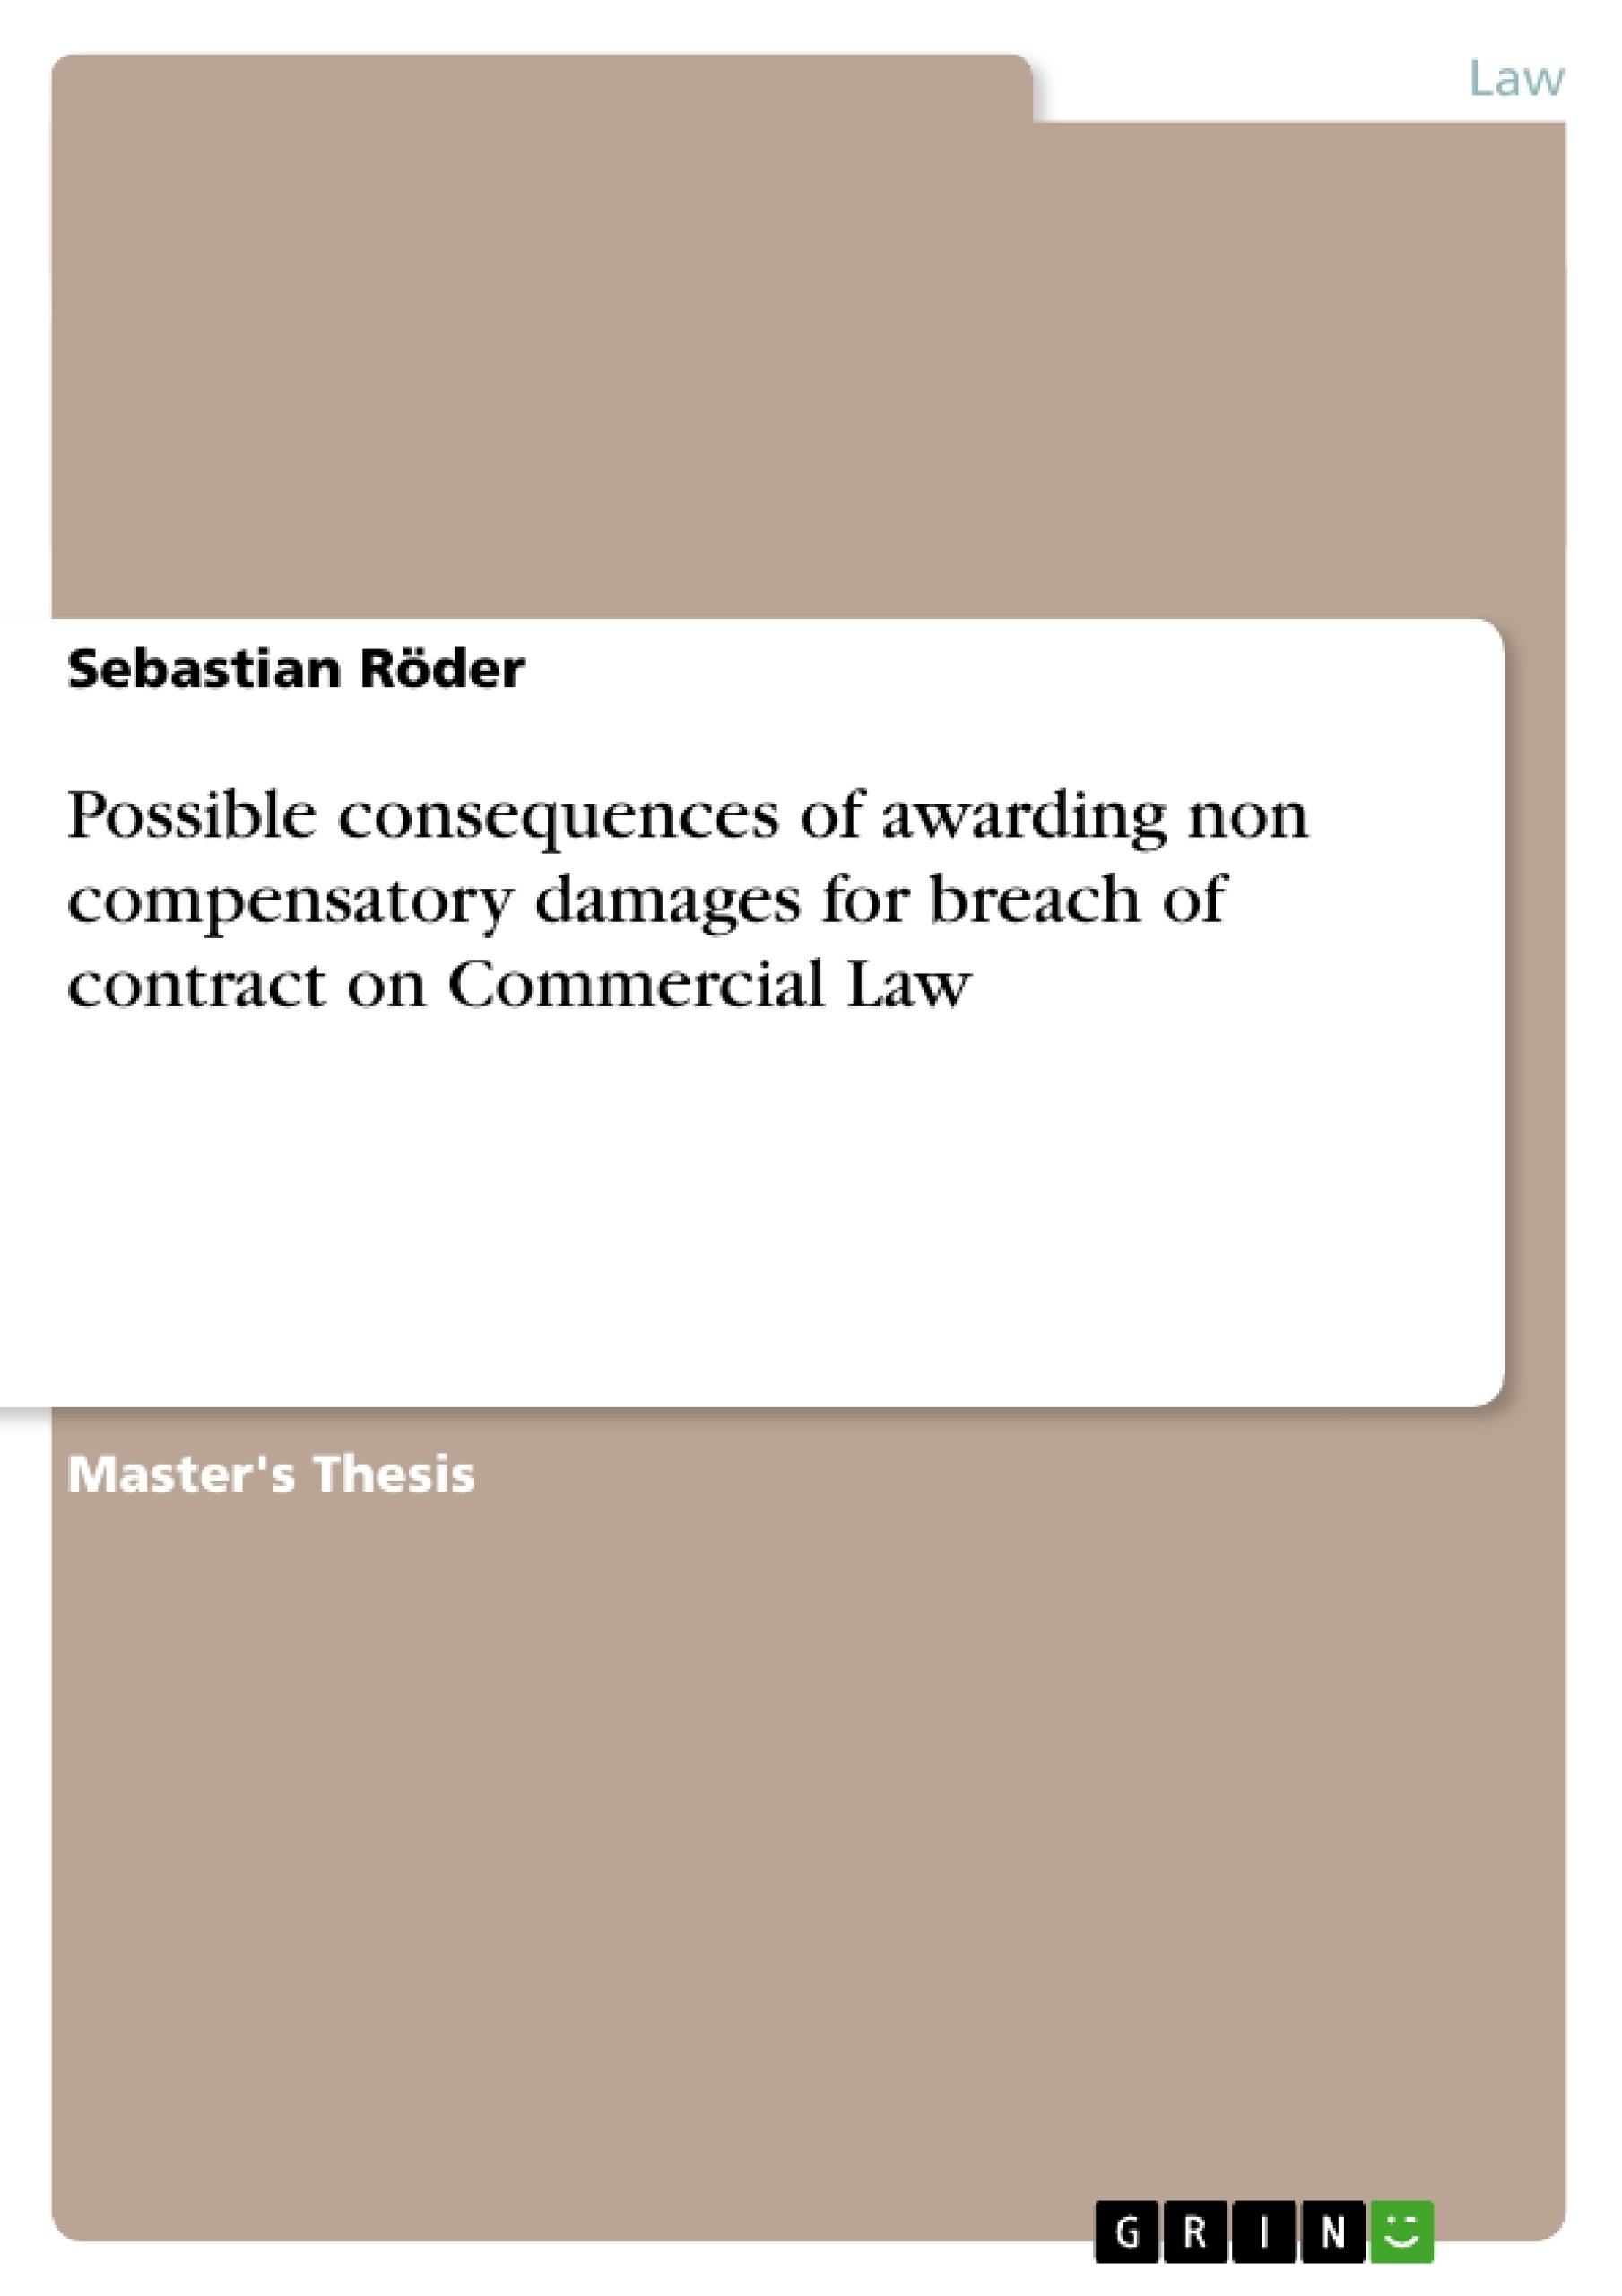 Title: Possible consequences of awarding non compensatory damages for breach of contract on Commercial Law